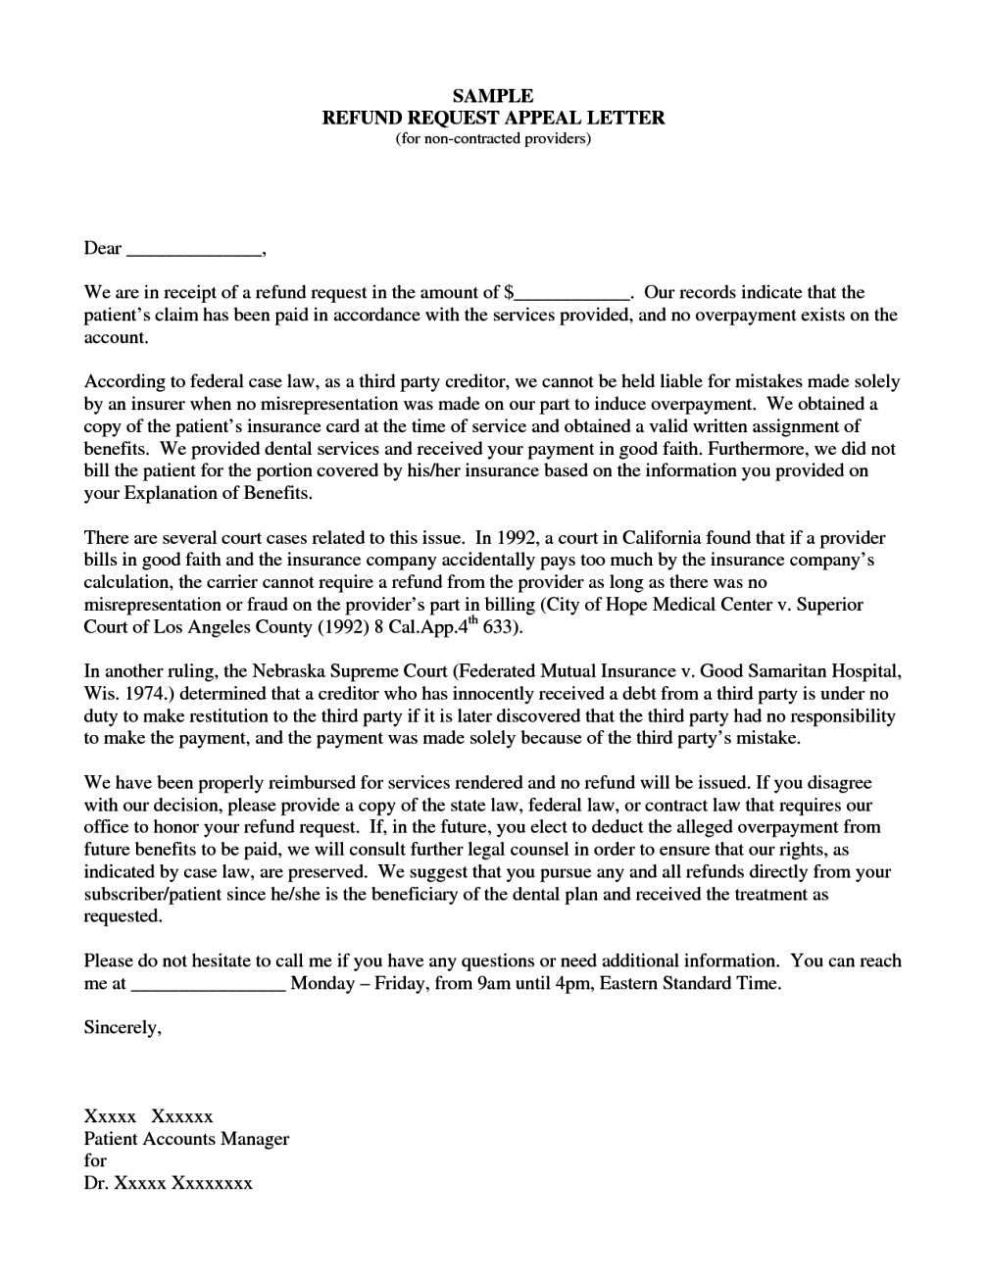 appeal request letter sample